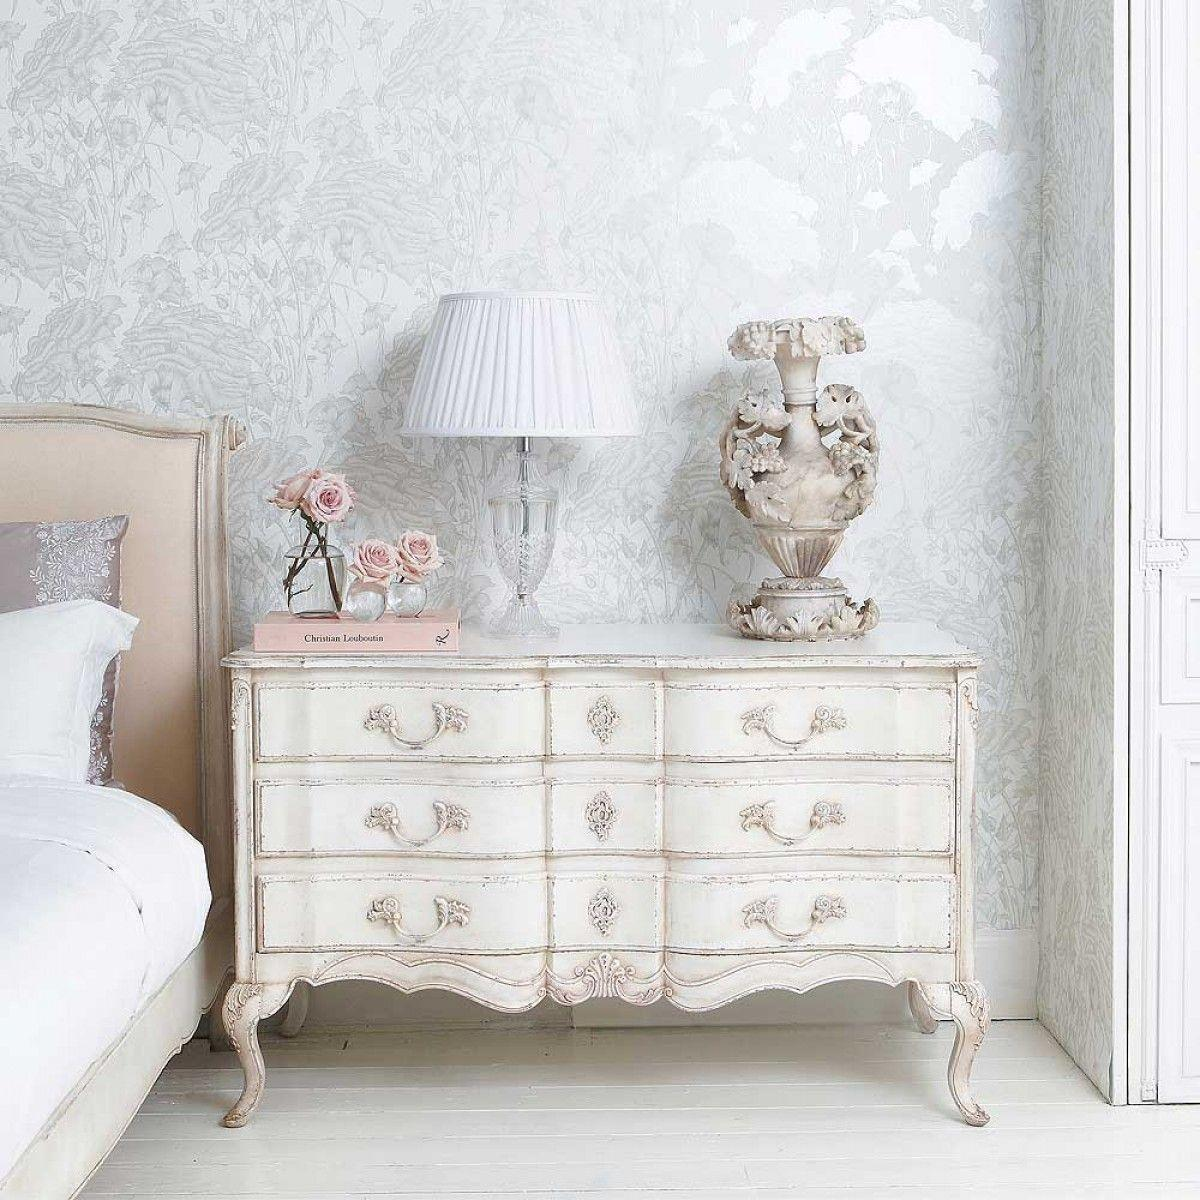 "Foto: Reprodução / <a href=""http://www.frenchbedroomcompany.co.uk/delphine-distressed-painted-chest-of-drawers"" target=""_blank"">French bedroom company</a>"